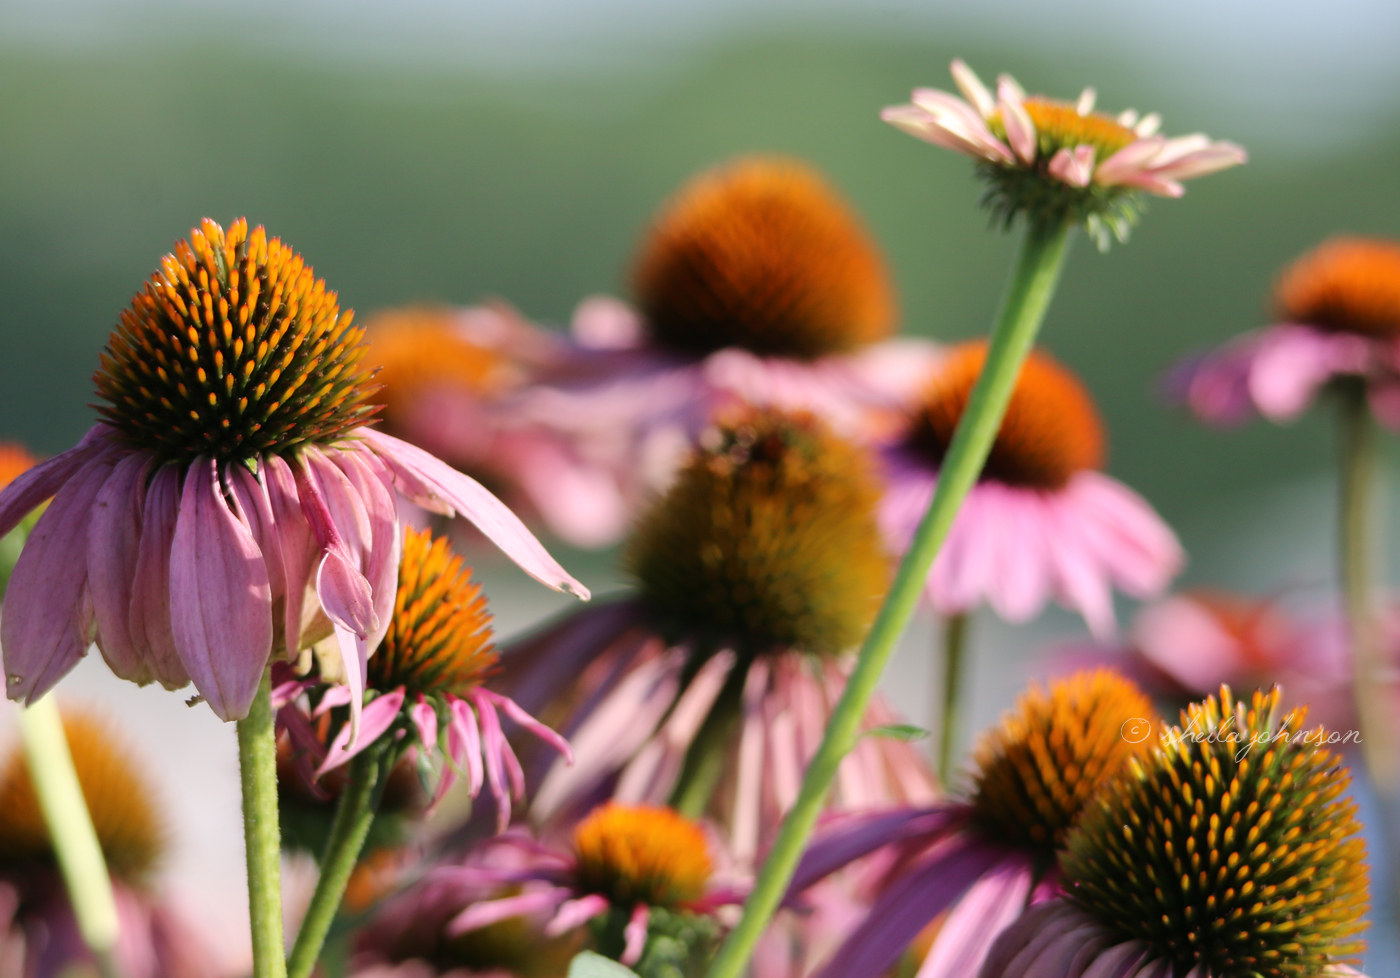 You May Have Heard Of The Purple Coneflower At Your Local Drugstore, As It Goes By The Scientific Name Of Echinacea. It's Sold Medicinally As Having Antidepressant And Immune-System Boosting Properties.